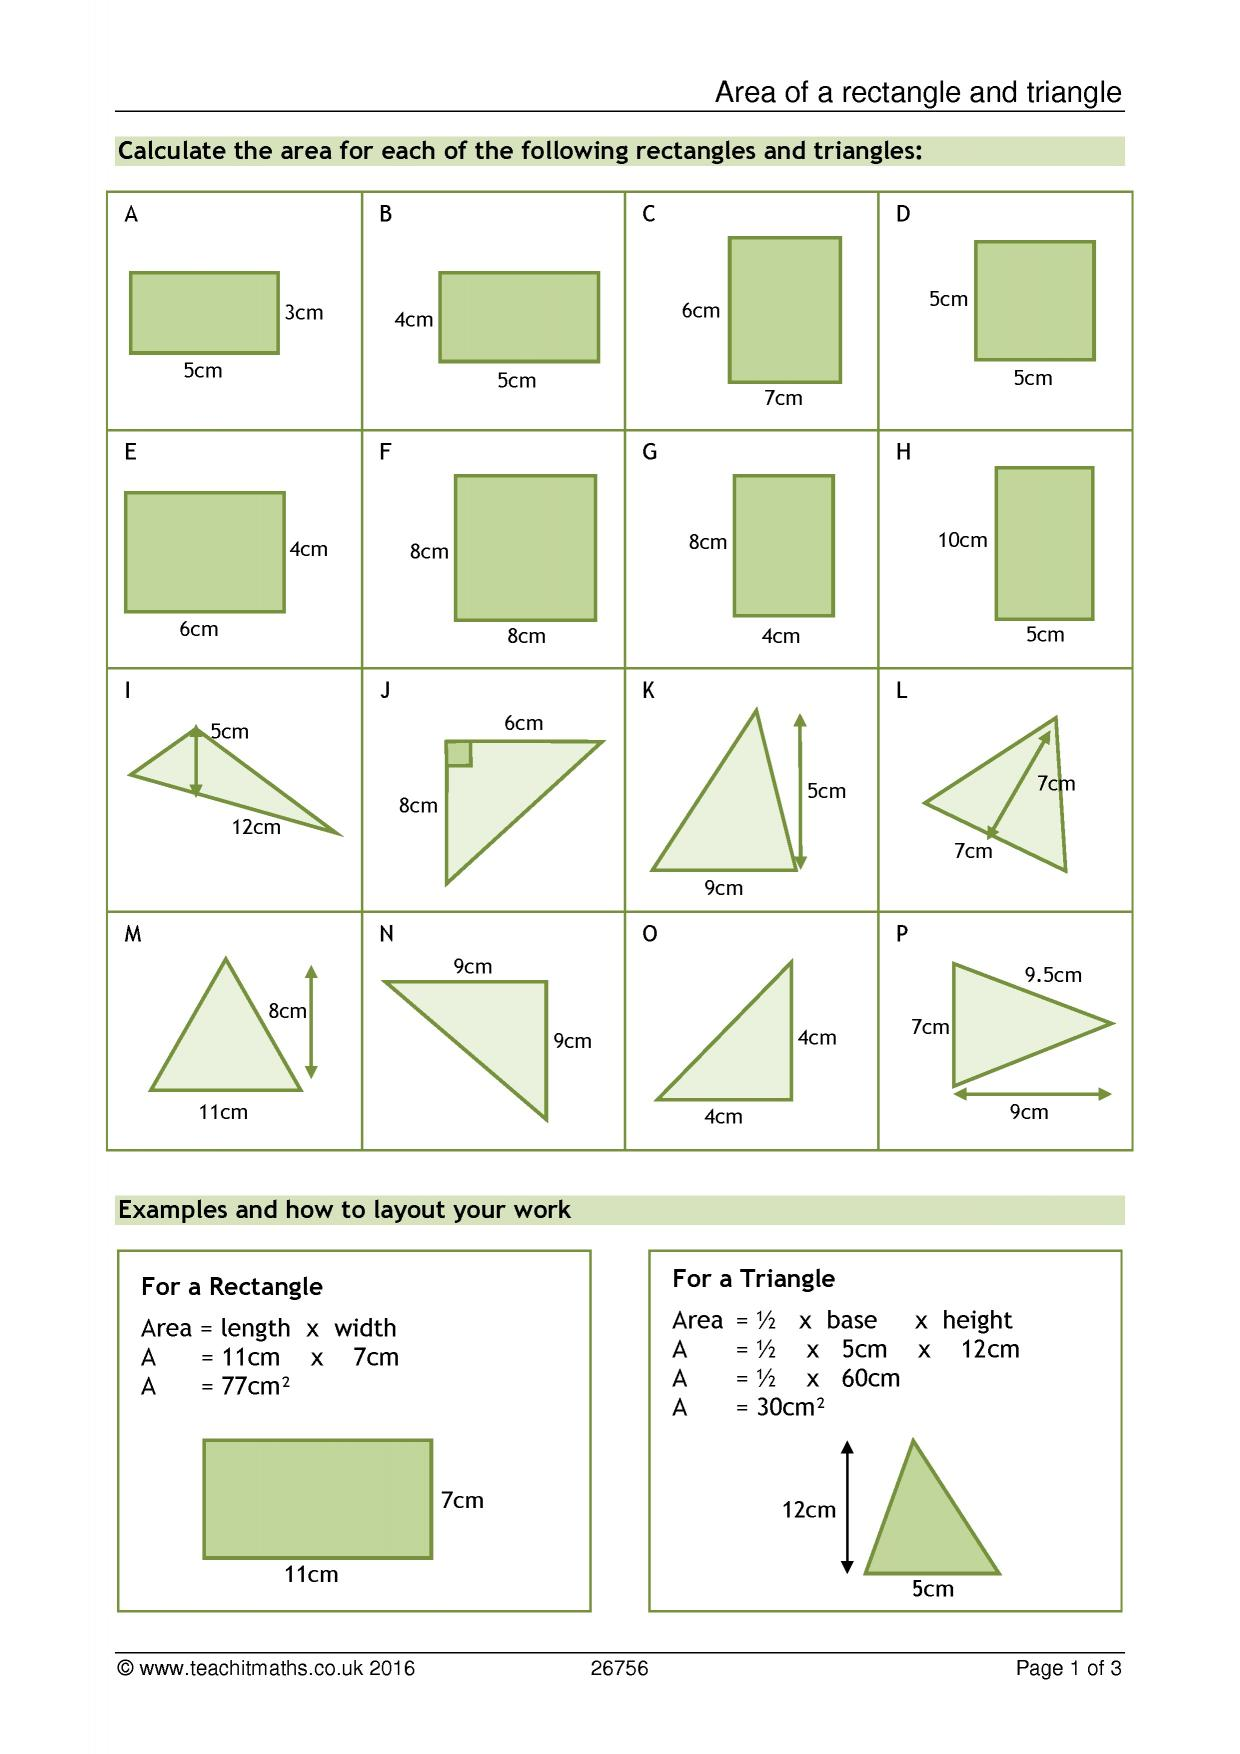 Areas Of Rectangles And Triangles